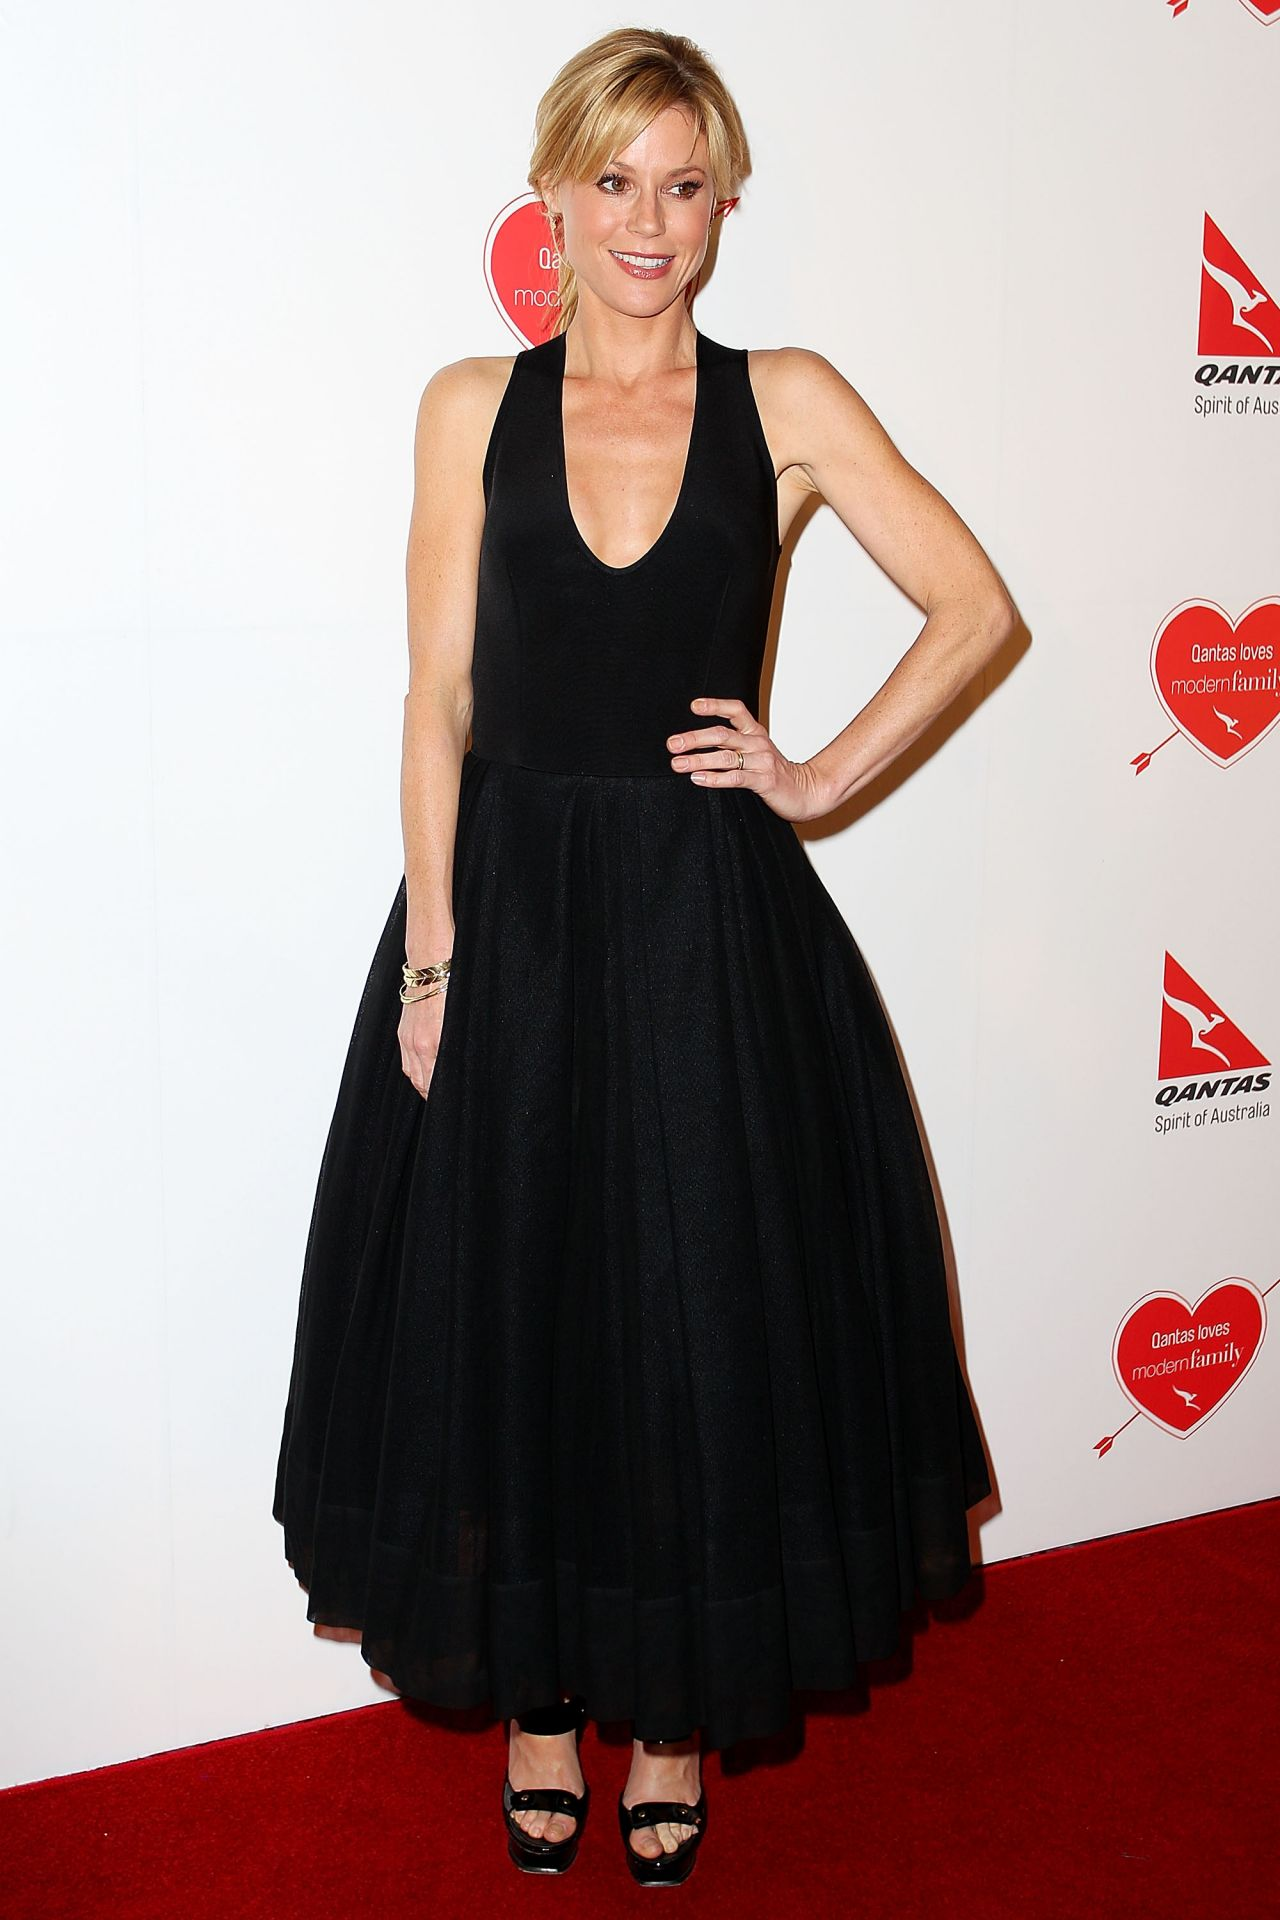 Julie Bowen on Red Carpet - Modern Family Media Call in Sydney, Australia